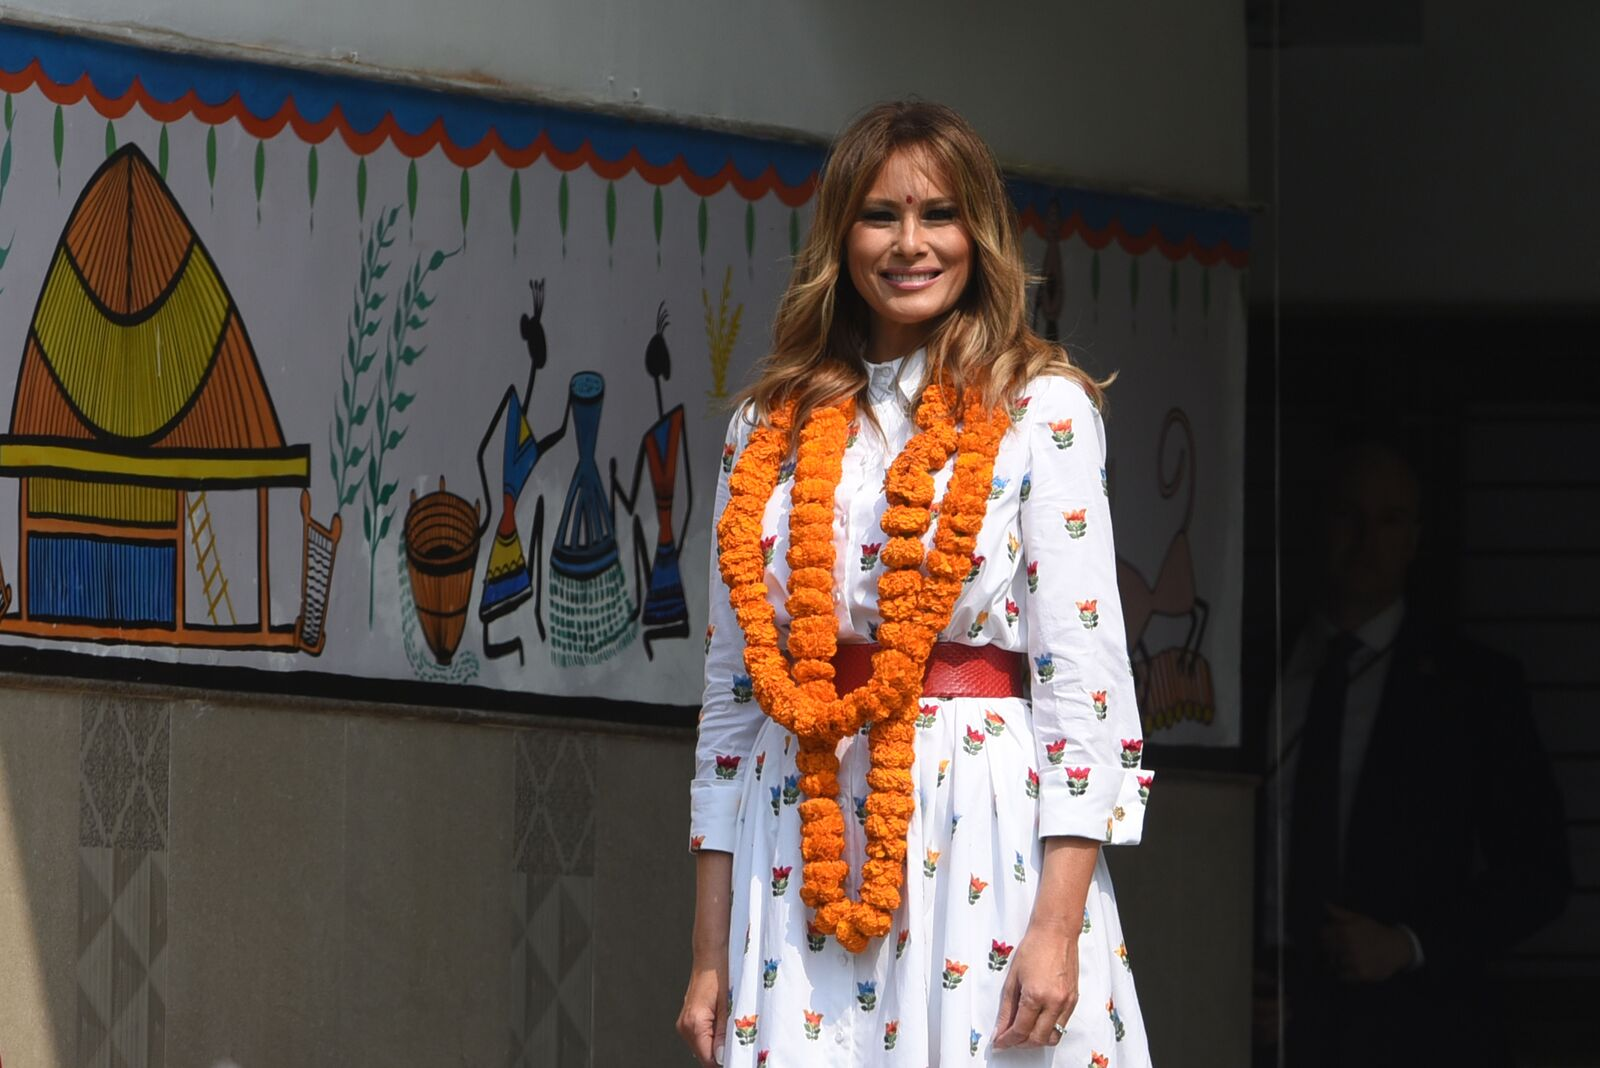 Melania Trump at the Sarvodaya Co-Educational Senior Secondary School during a visit to a Delhi Government School on February 25, 2020, in New Delhi, India | Photo:Sanchit Khanna/Hindustan Times/Getty Images